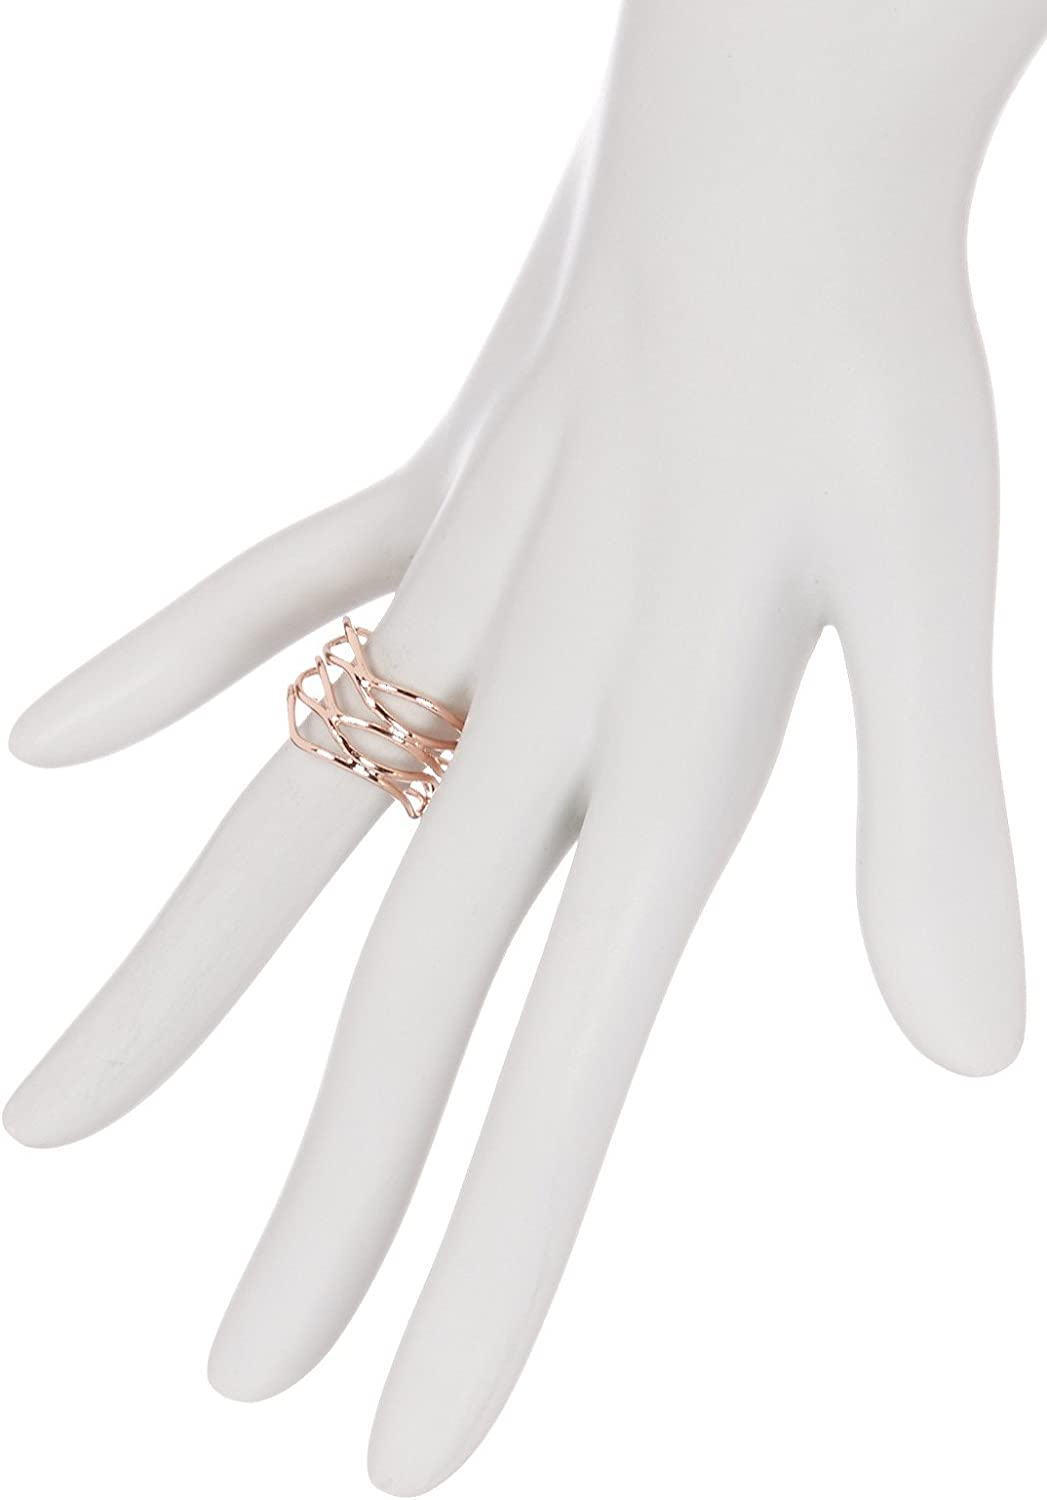 Gemaholique Rose Gold Clad Handmade Wire Ring